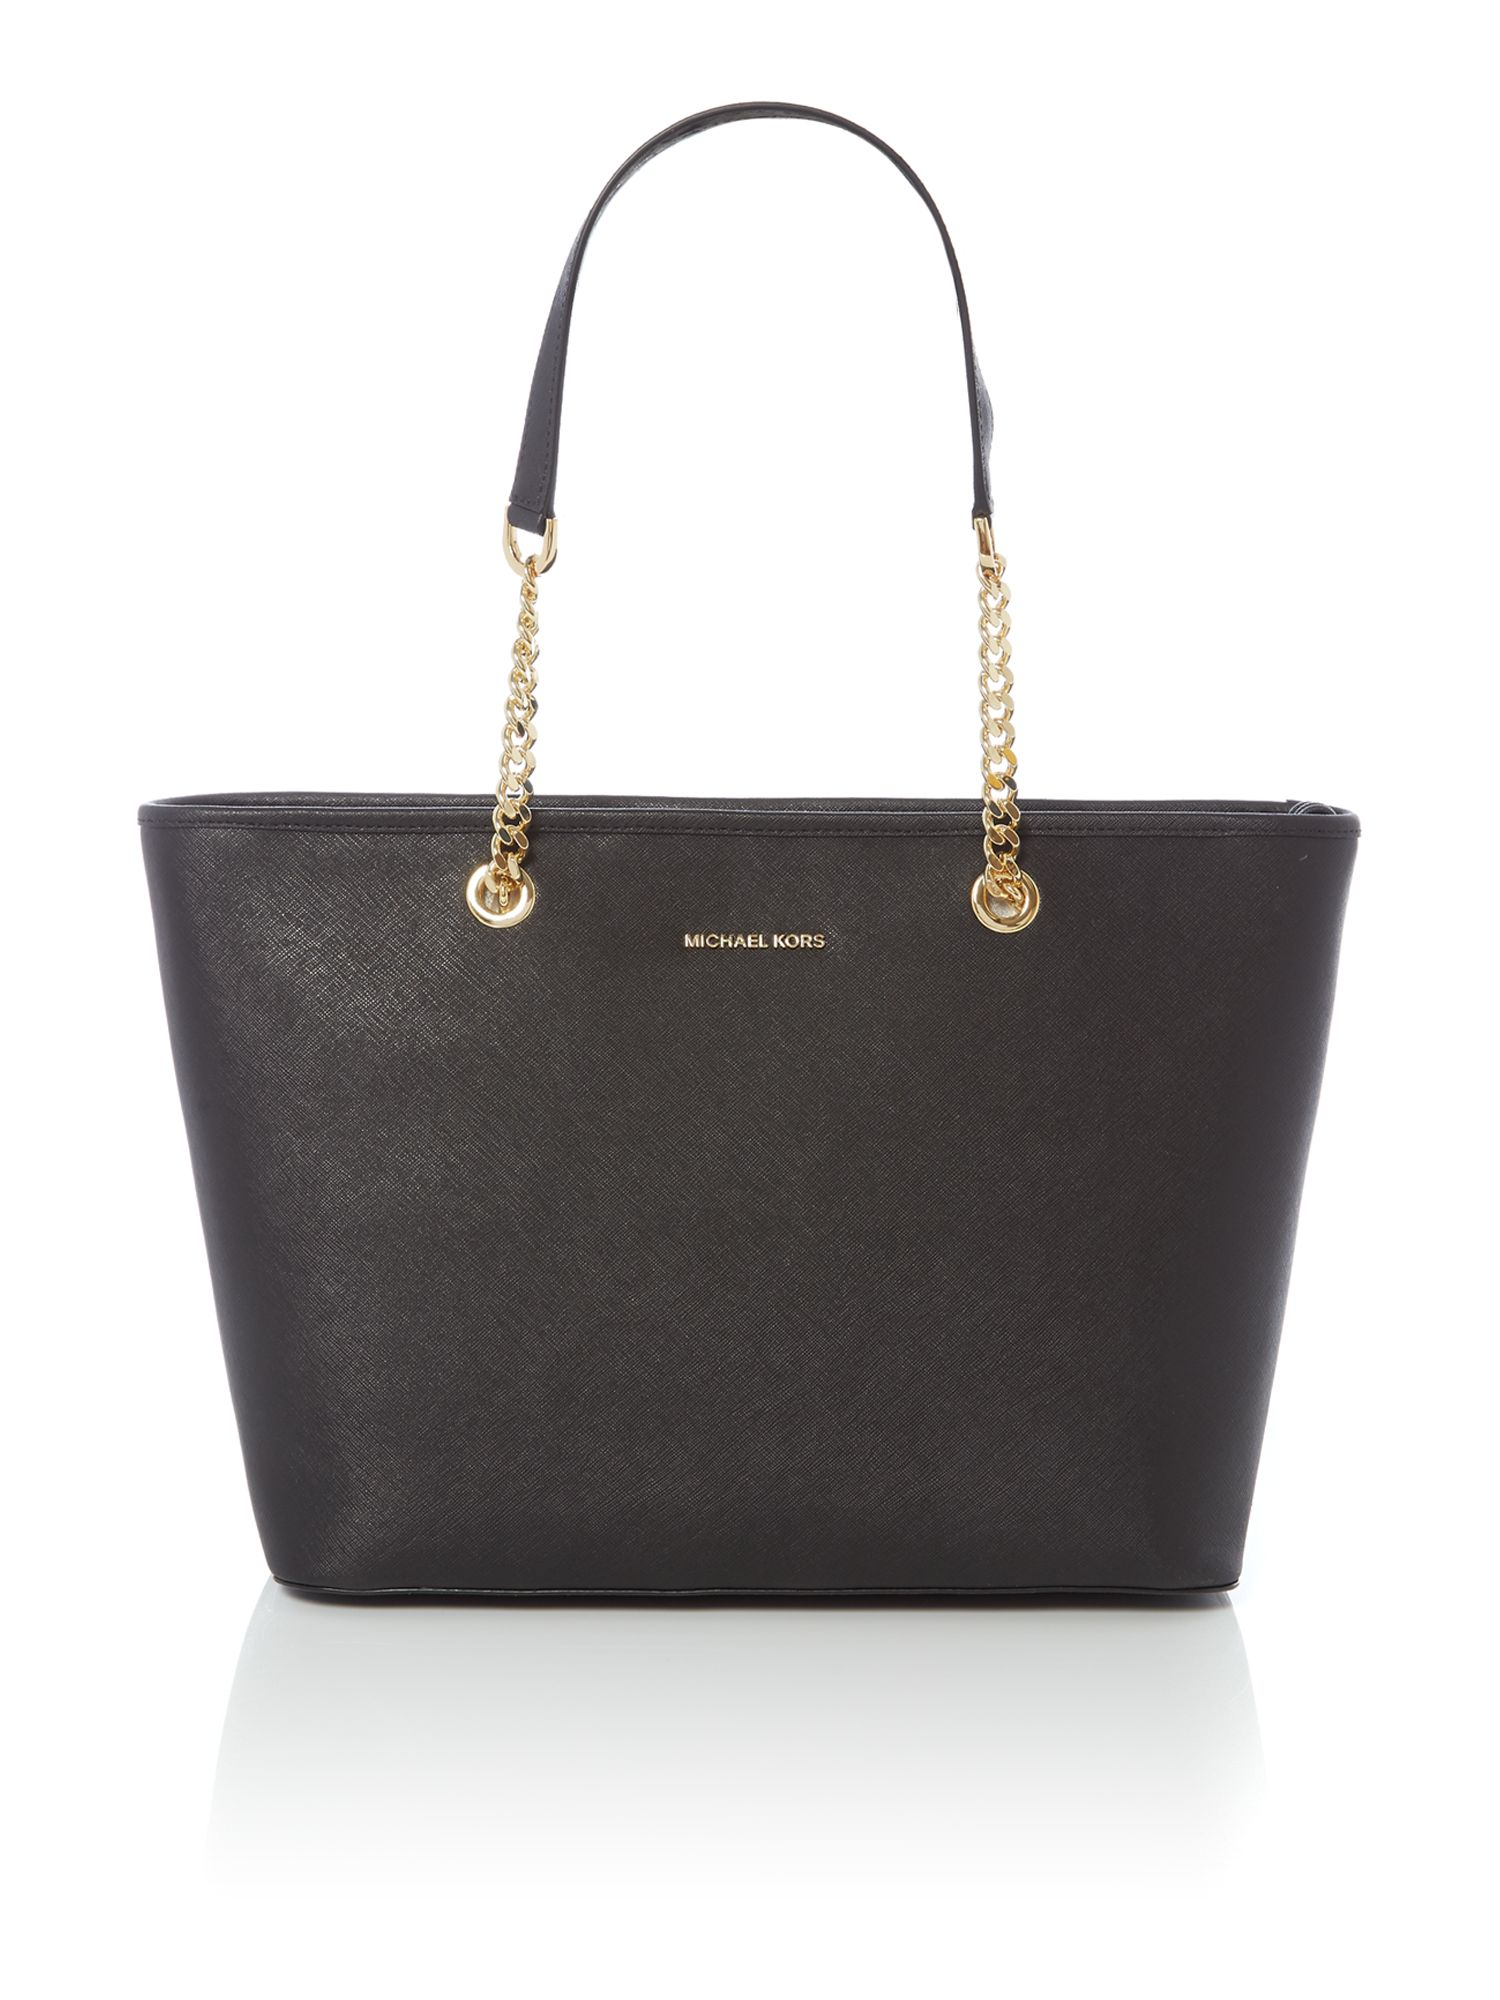 Michael Kors Jetset chain black top zip tote Black